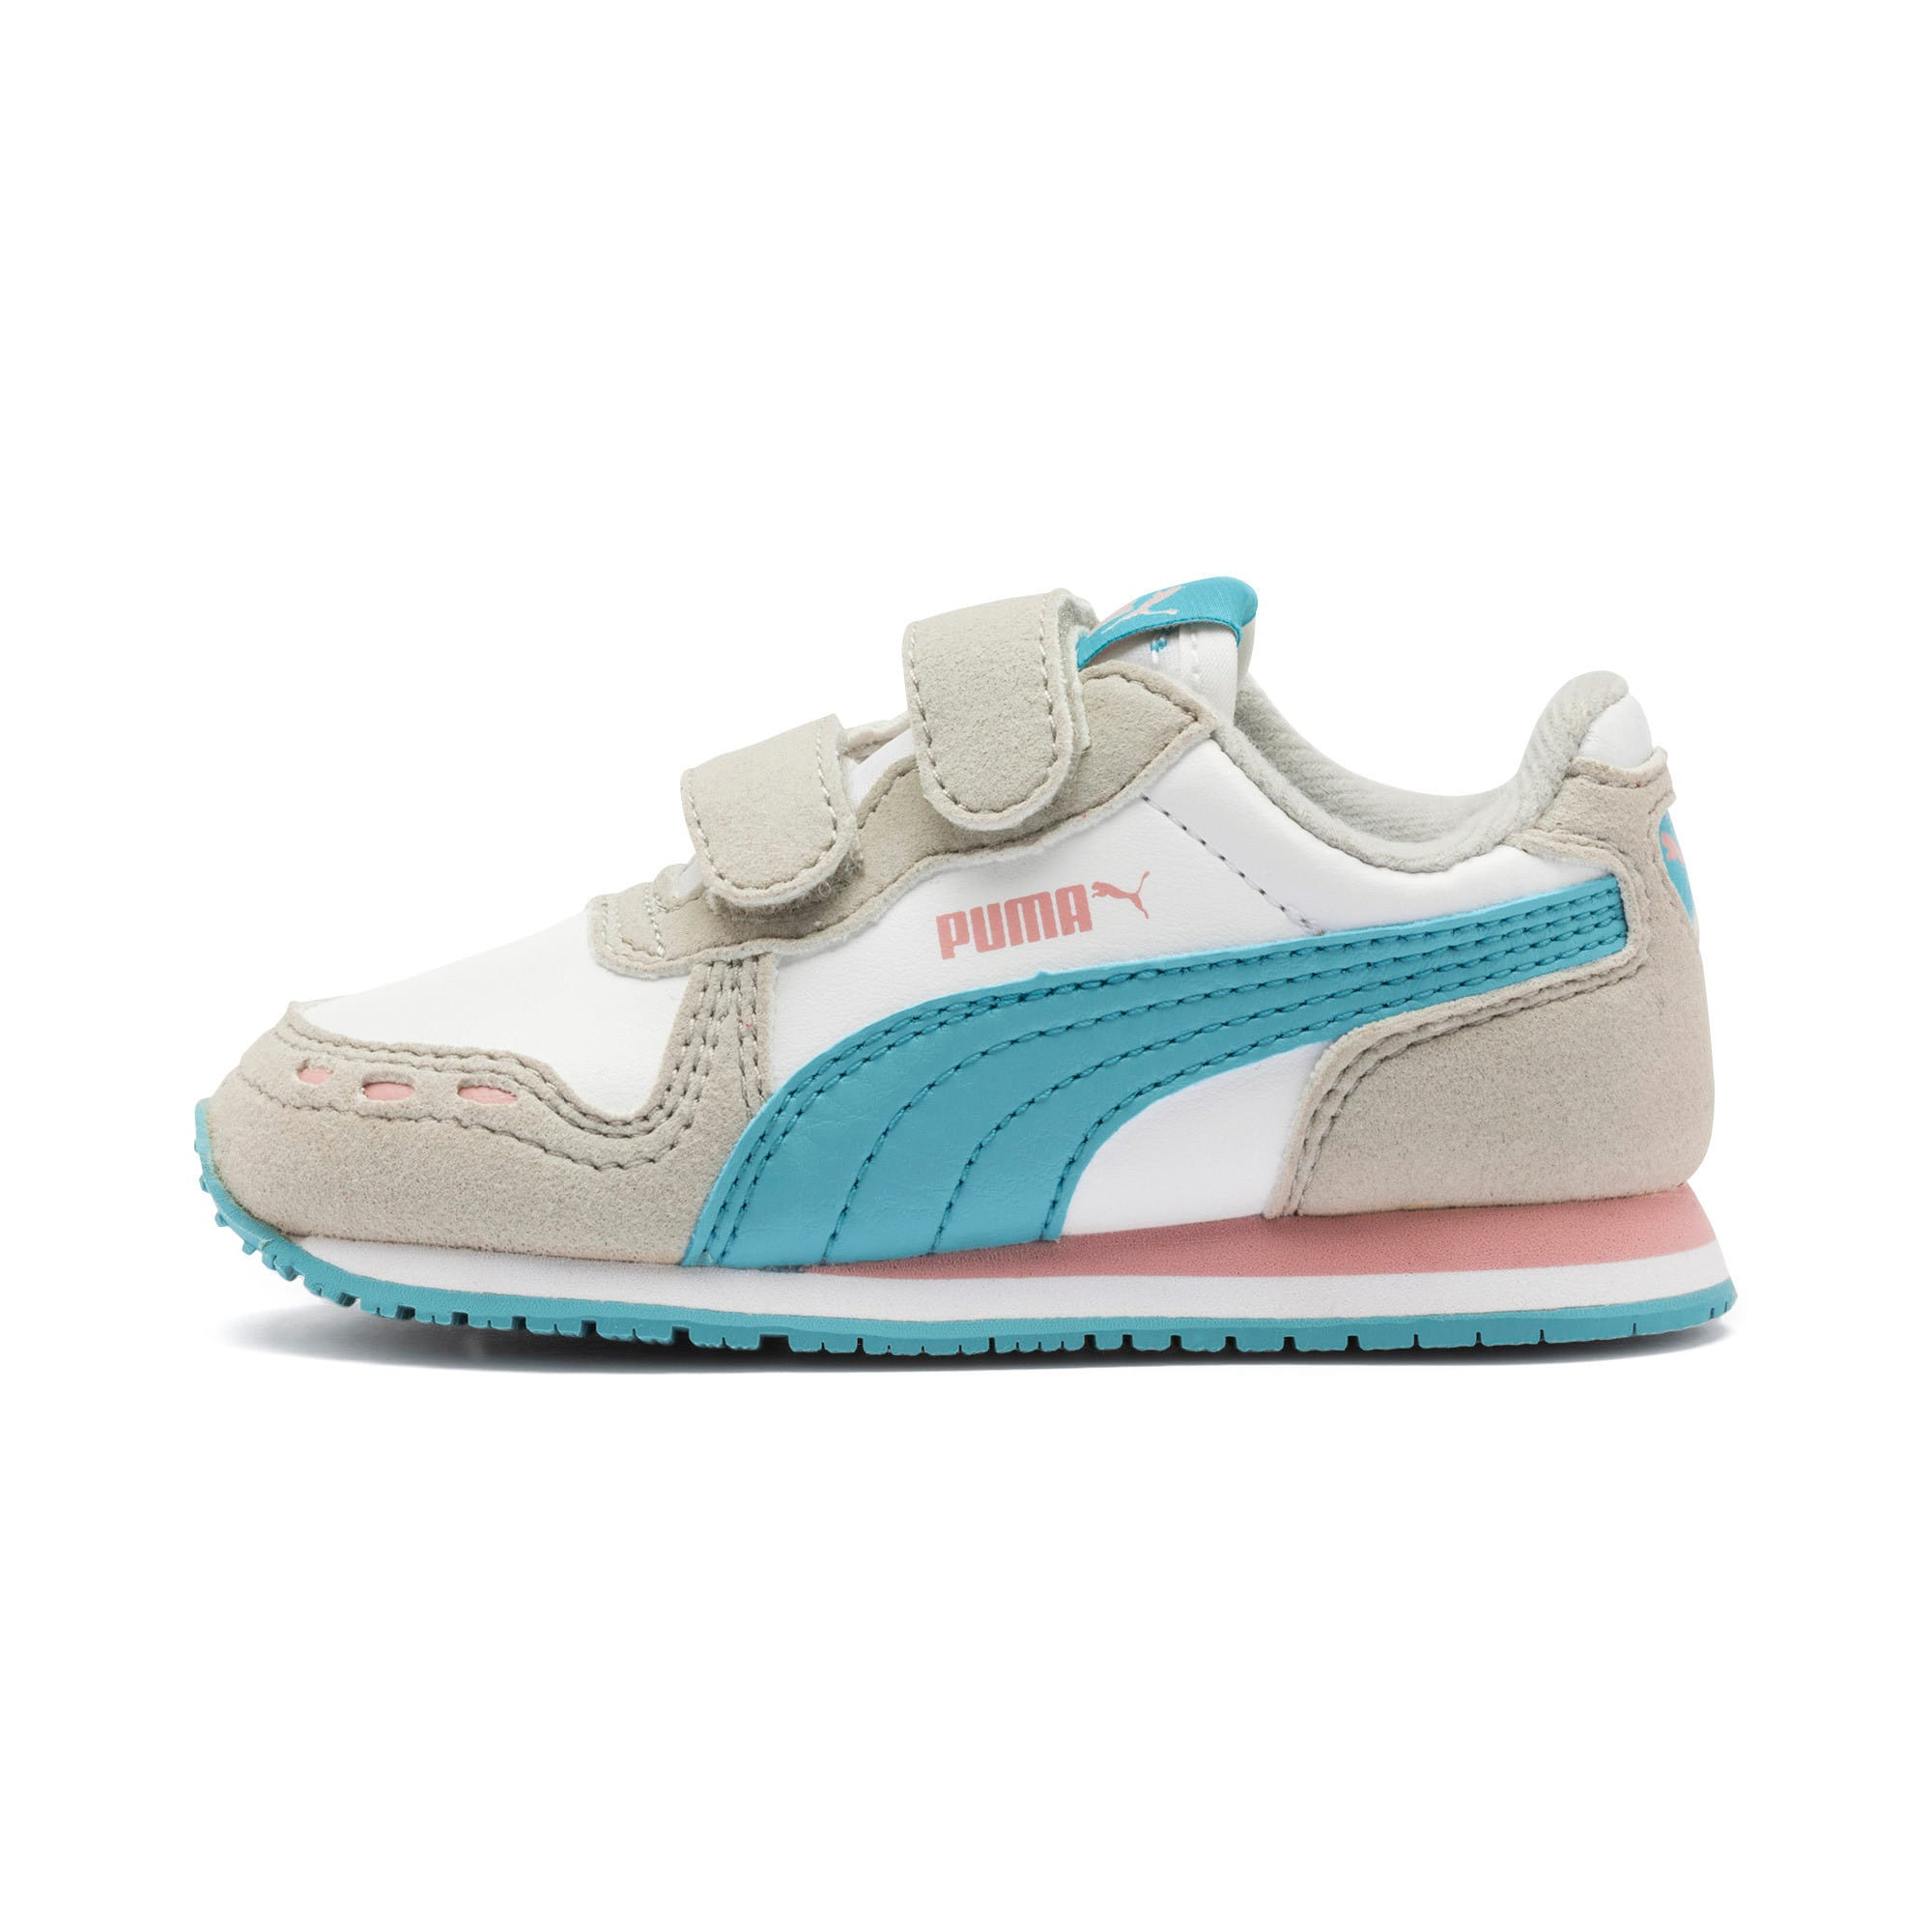 Thumbnail 1 of Cabana Racer SL Baby Trainers, Puma White-Milky Blue, medium